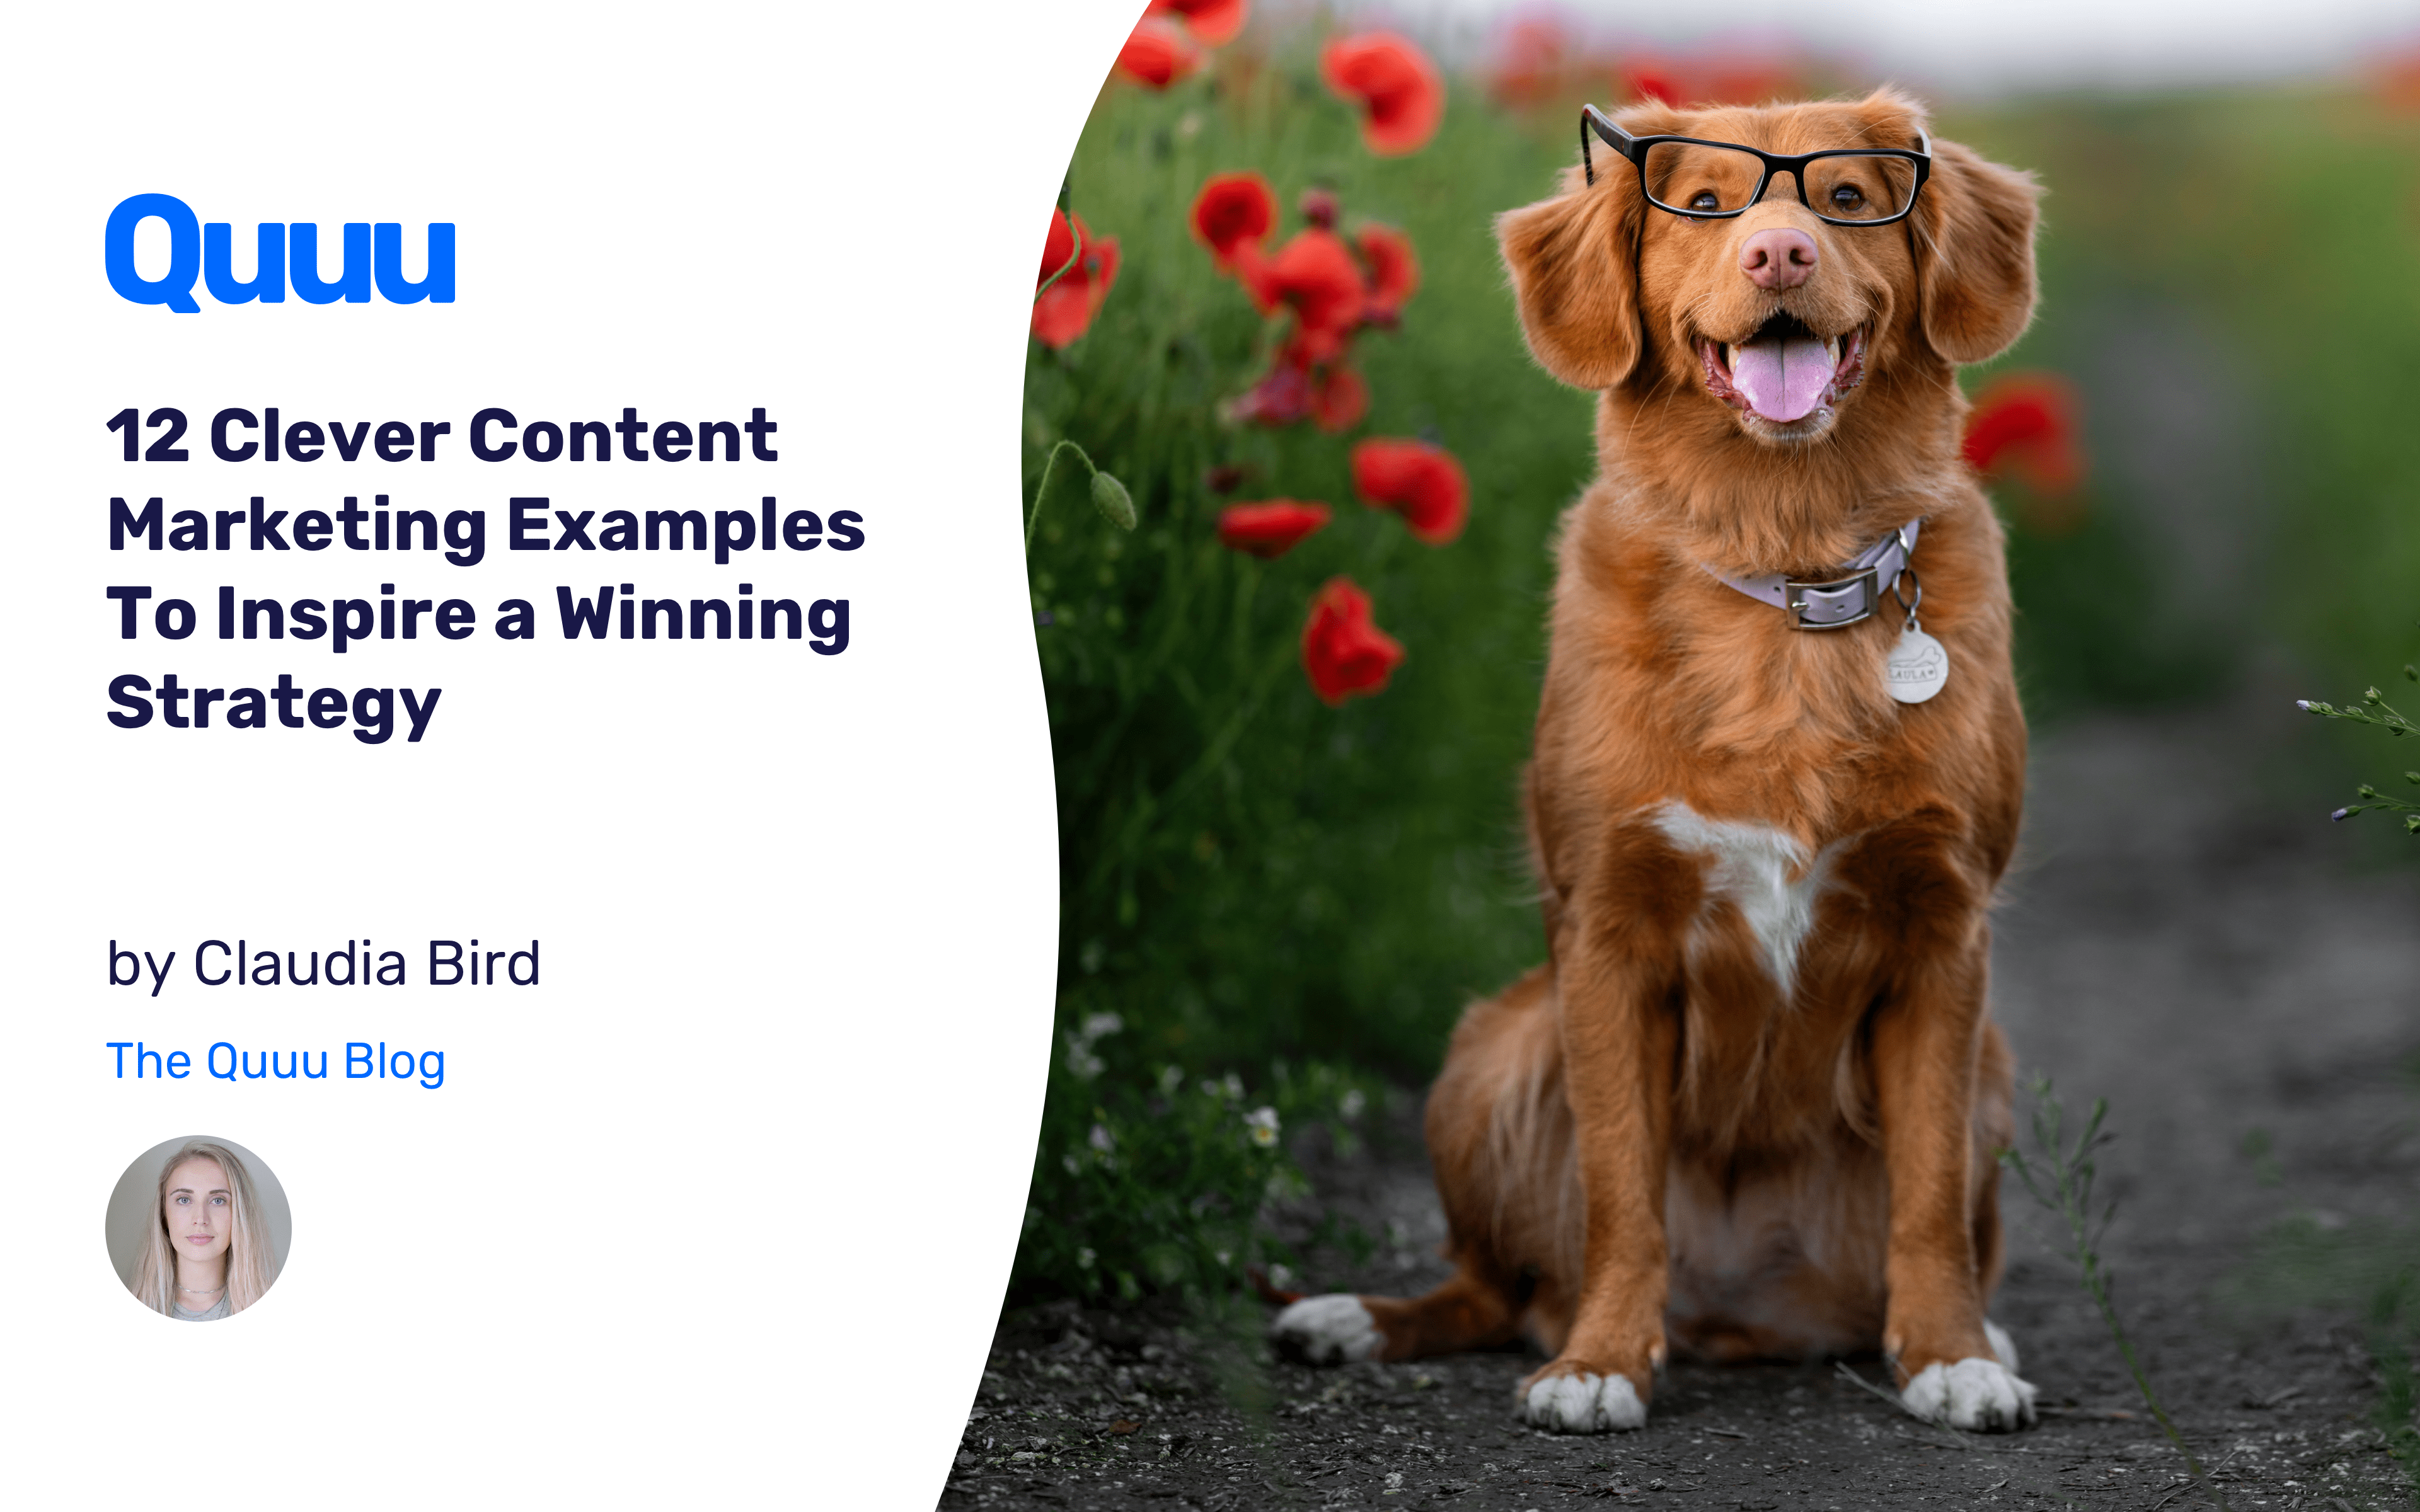 12 Clever Content Marketing Examples To Inspire a Winning Strategy